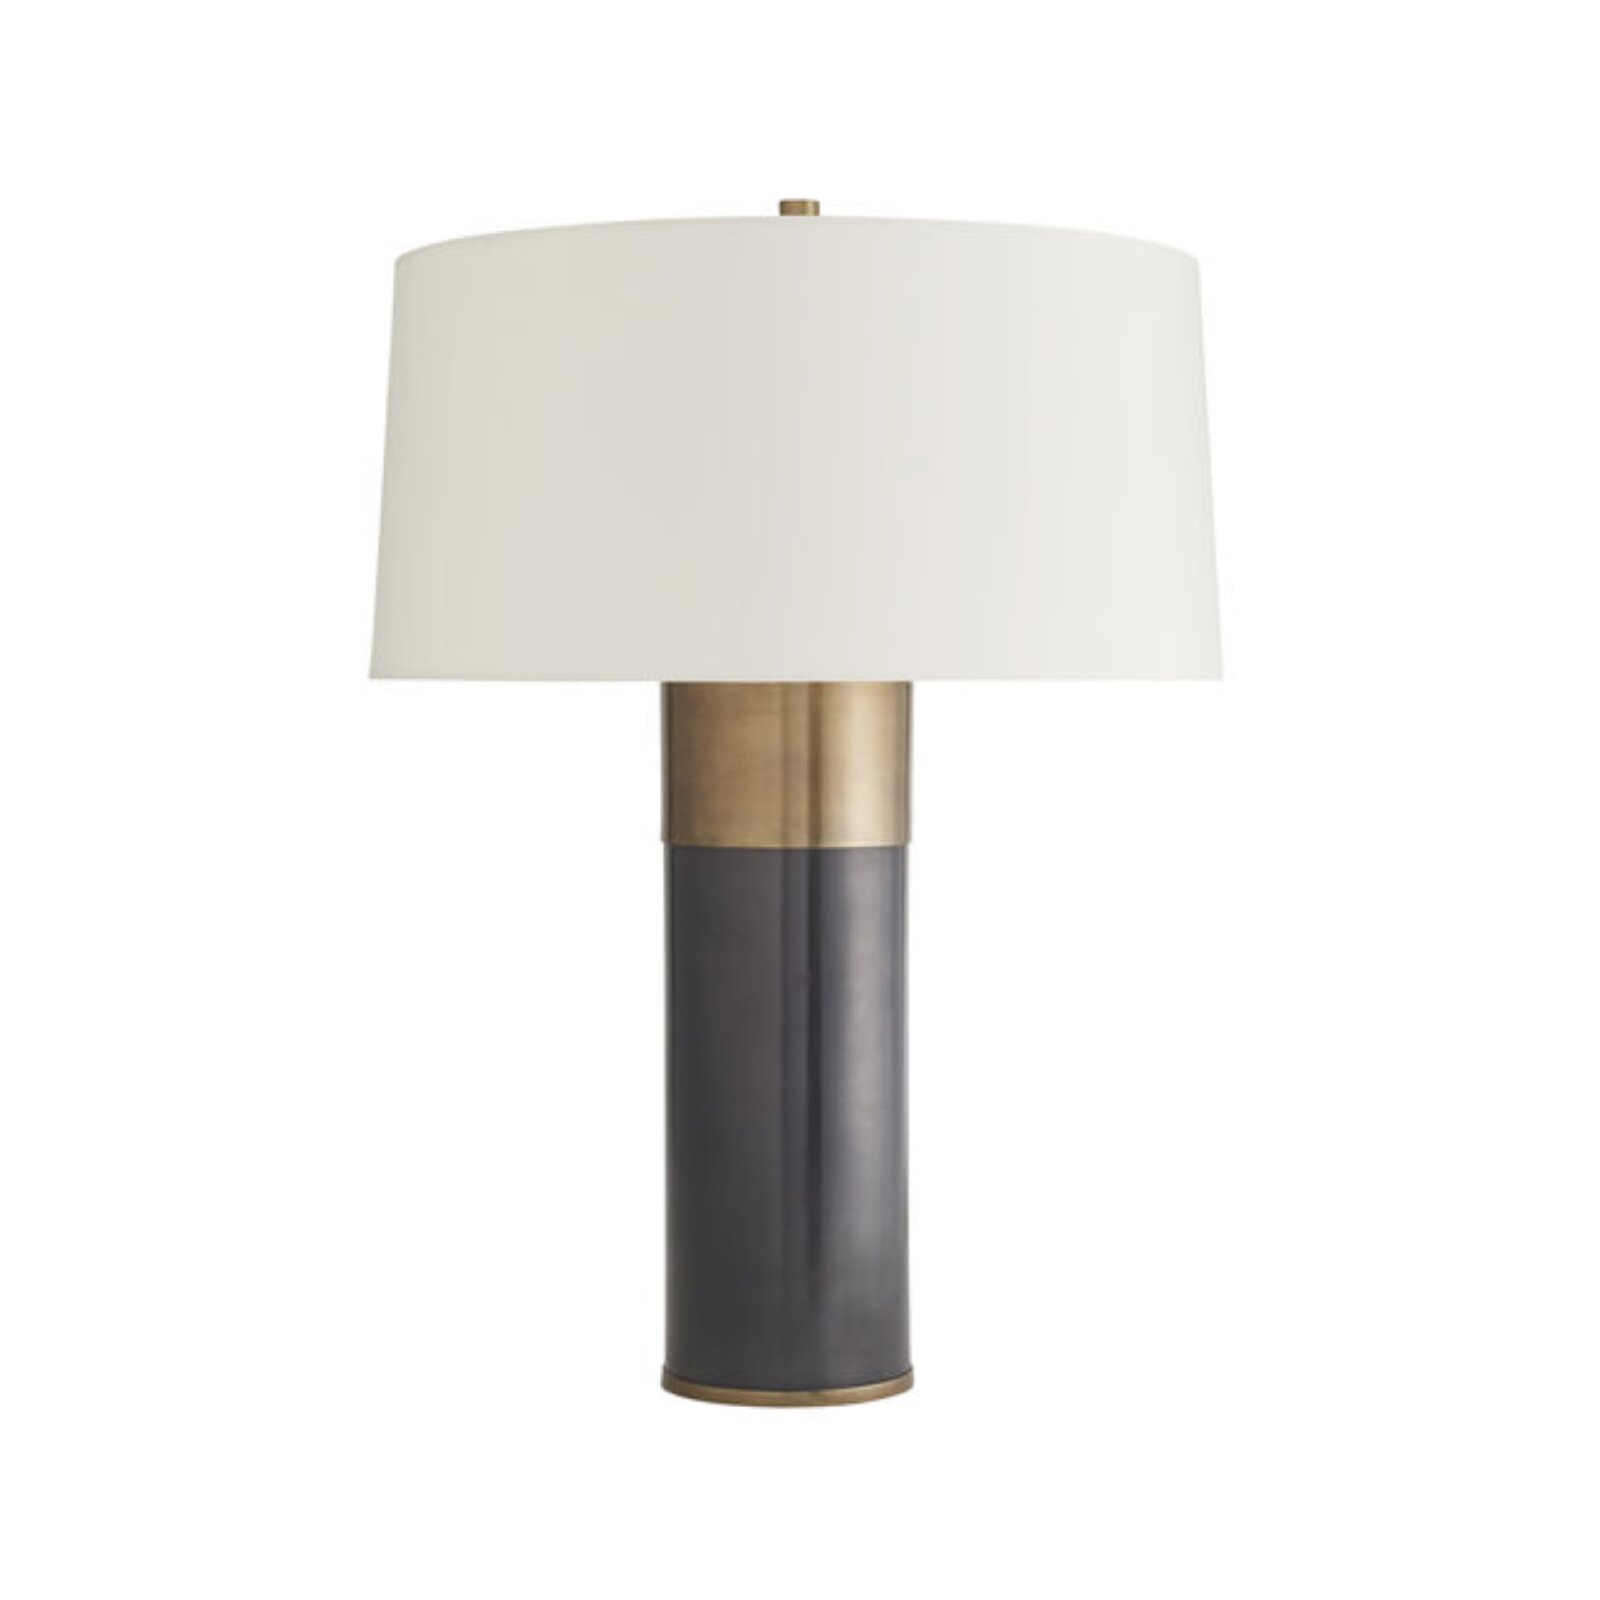 Mitchell Gold + Bob Williams Ledford Table Lamp